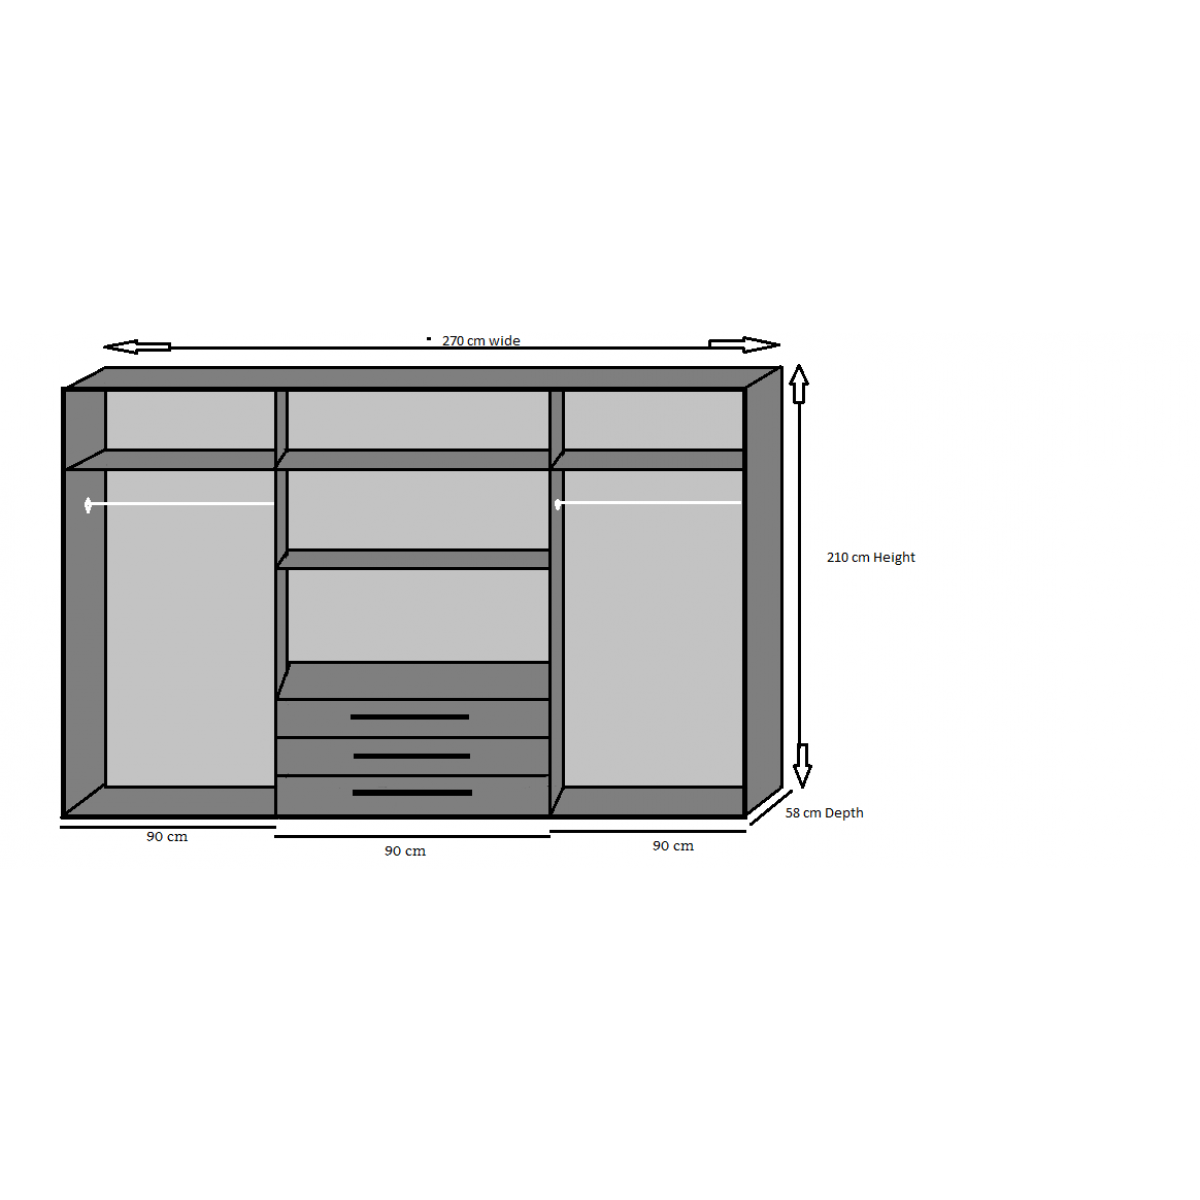 Wardrobe drawing full height. Yvonne door drawer mirrored